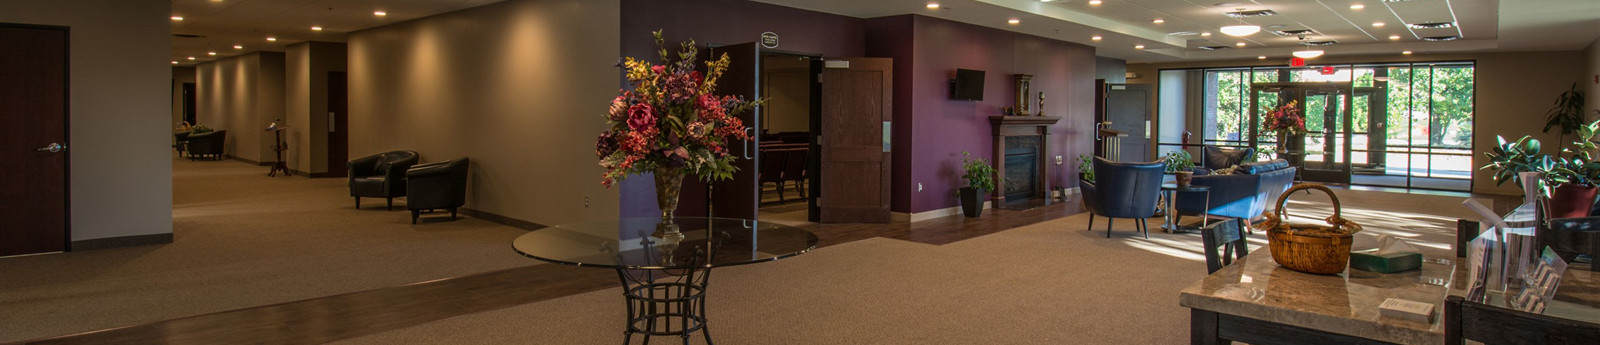 Plan Ahead | Kemp Funeral Home & Cremation Services